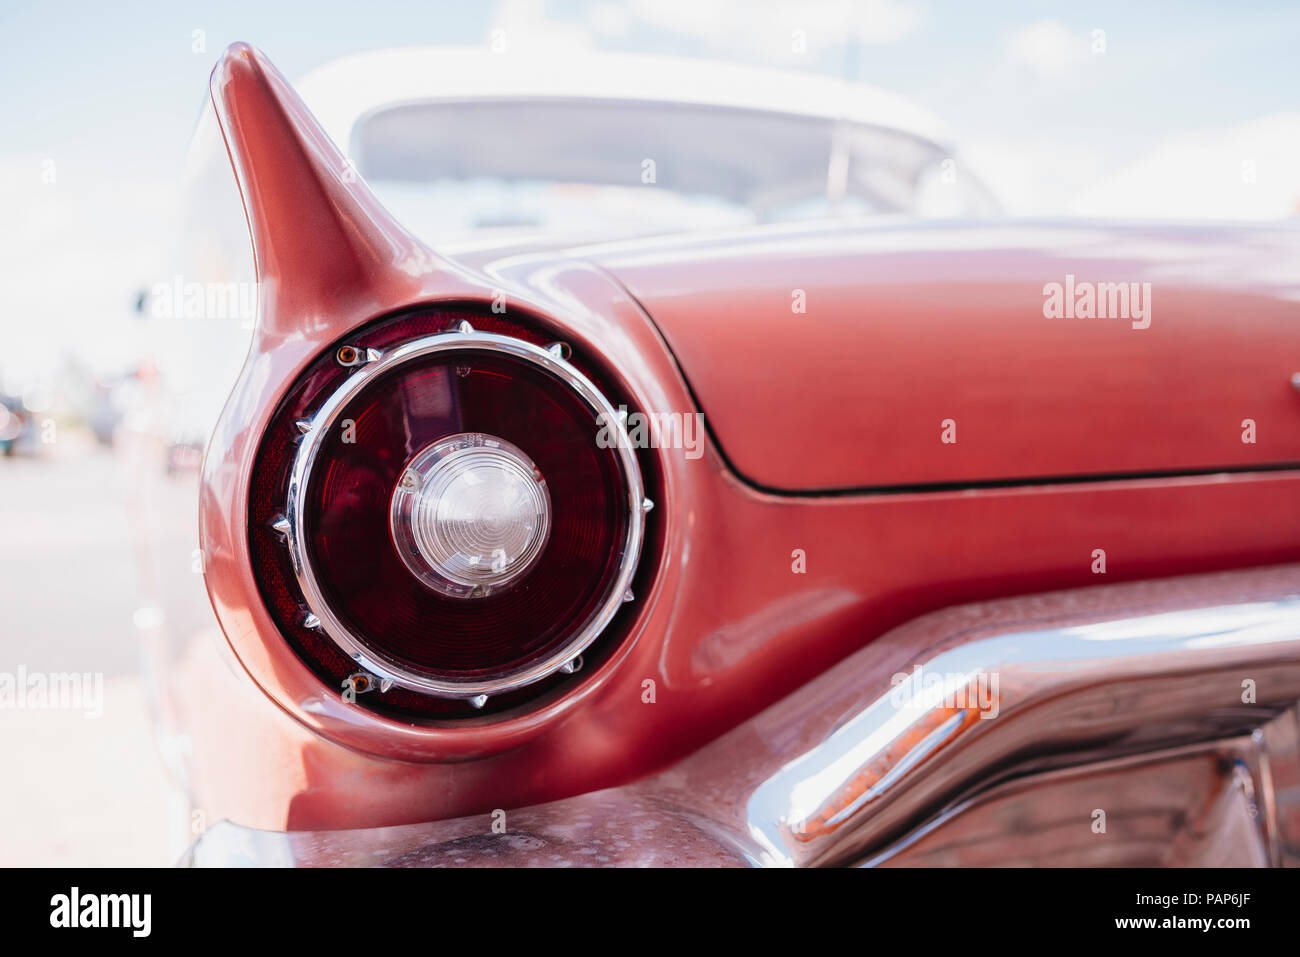 USA, Arizona, Williams, rear view of a vintage pink car at Route 66 Stock Photo